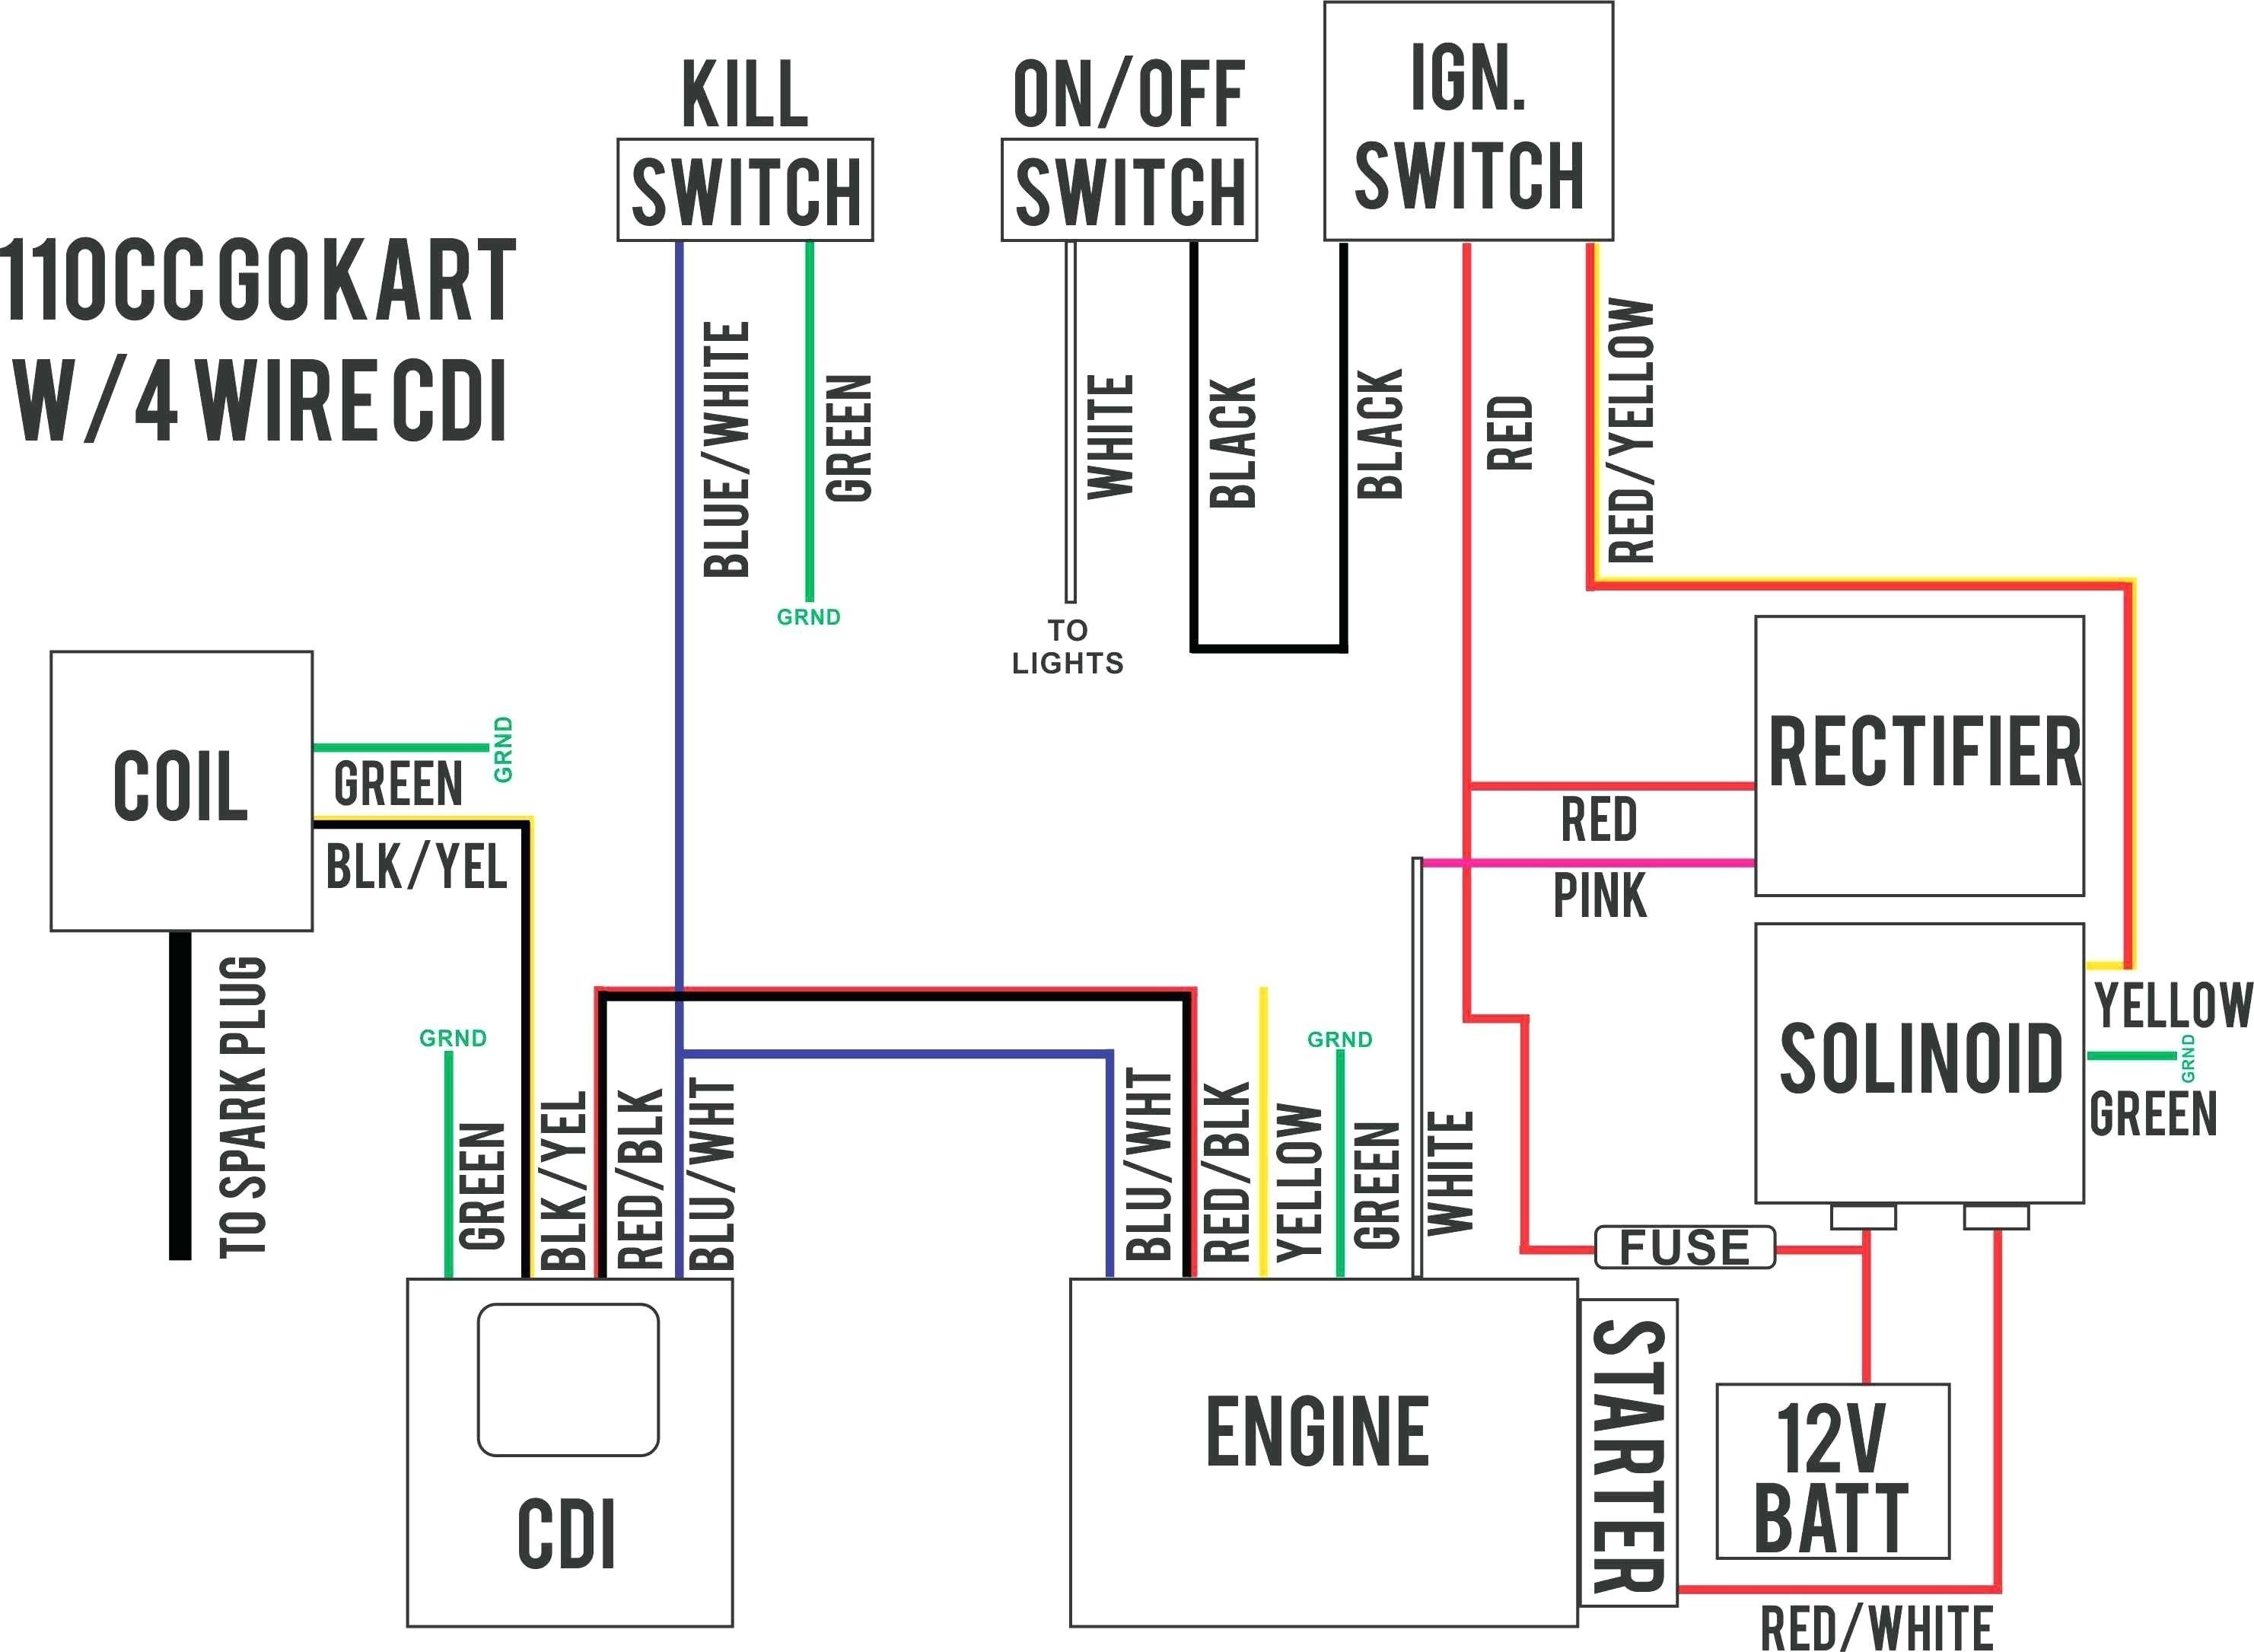 Kenwood Kdc 108 Stereo Wire Diagram In 2020 Electrical Wiring Diagram Motorcycle Wiring Electrical Diagram